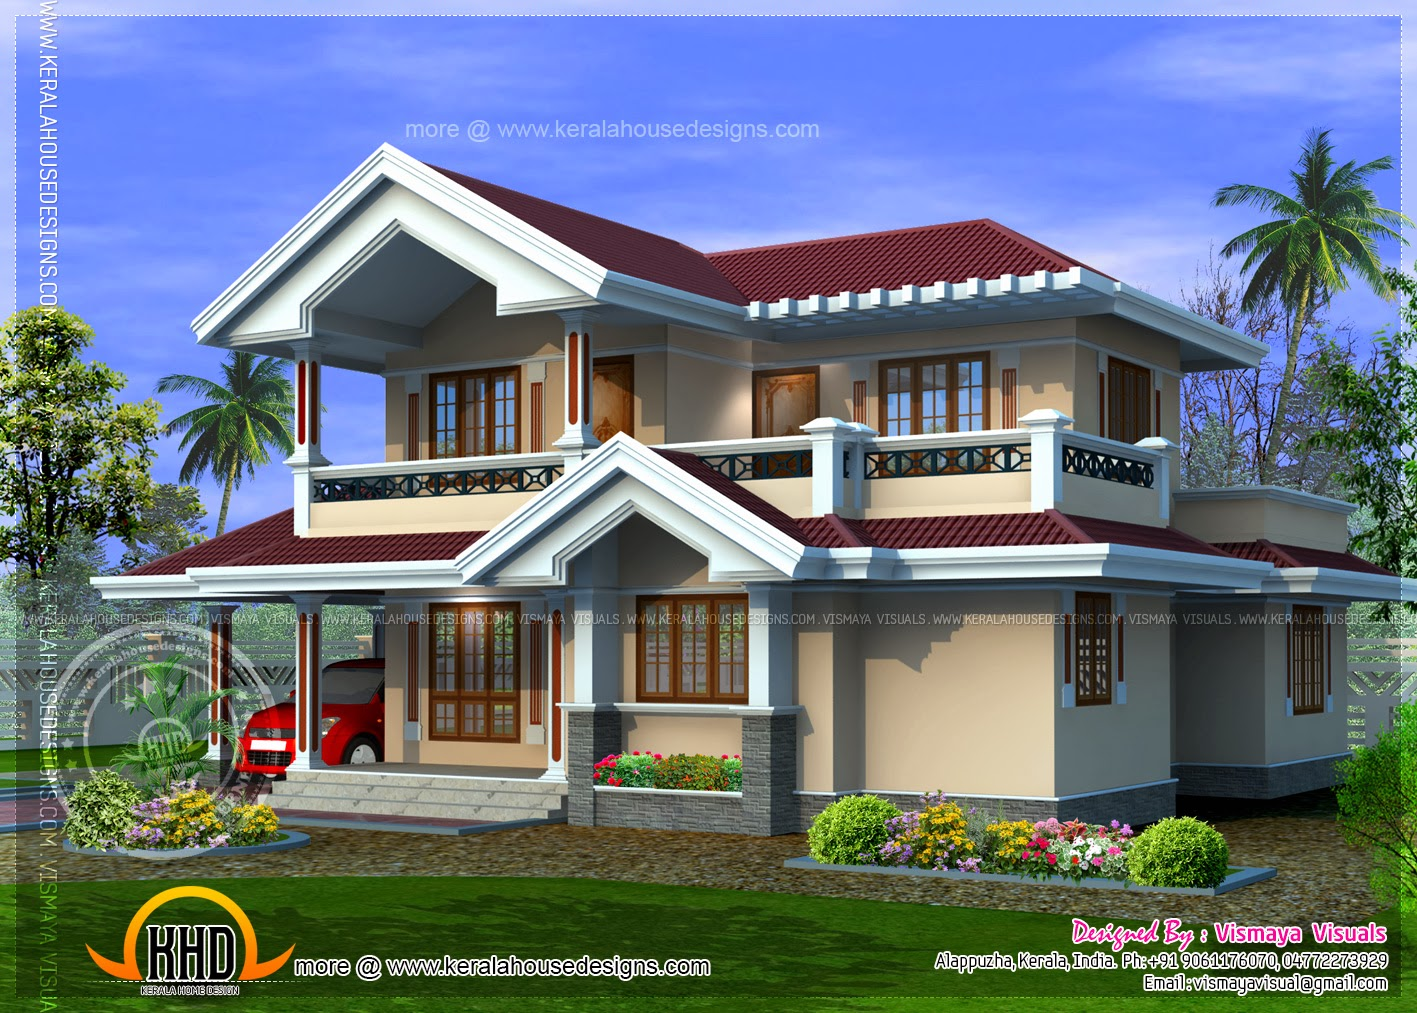 kerala style villa plan in 1850 square feet kerala home